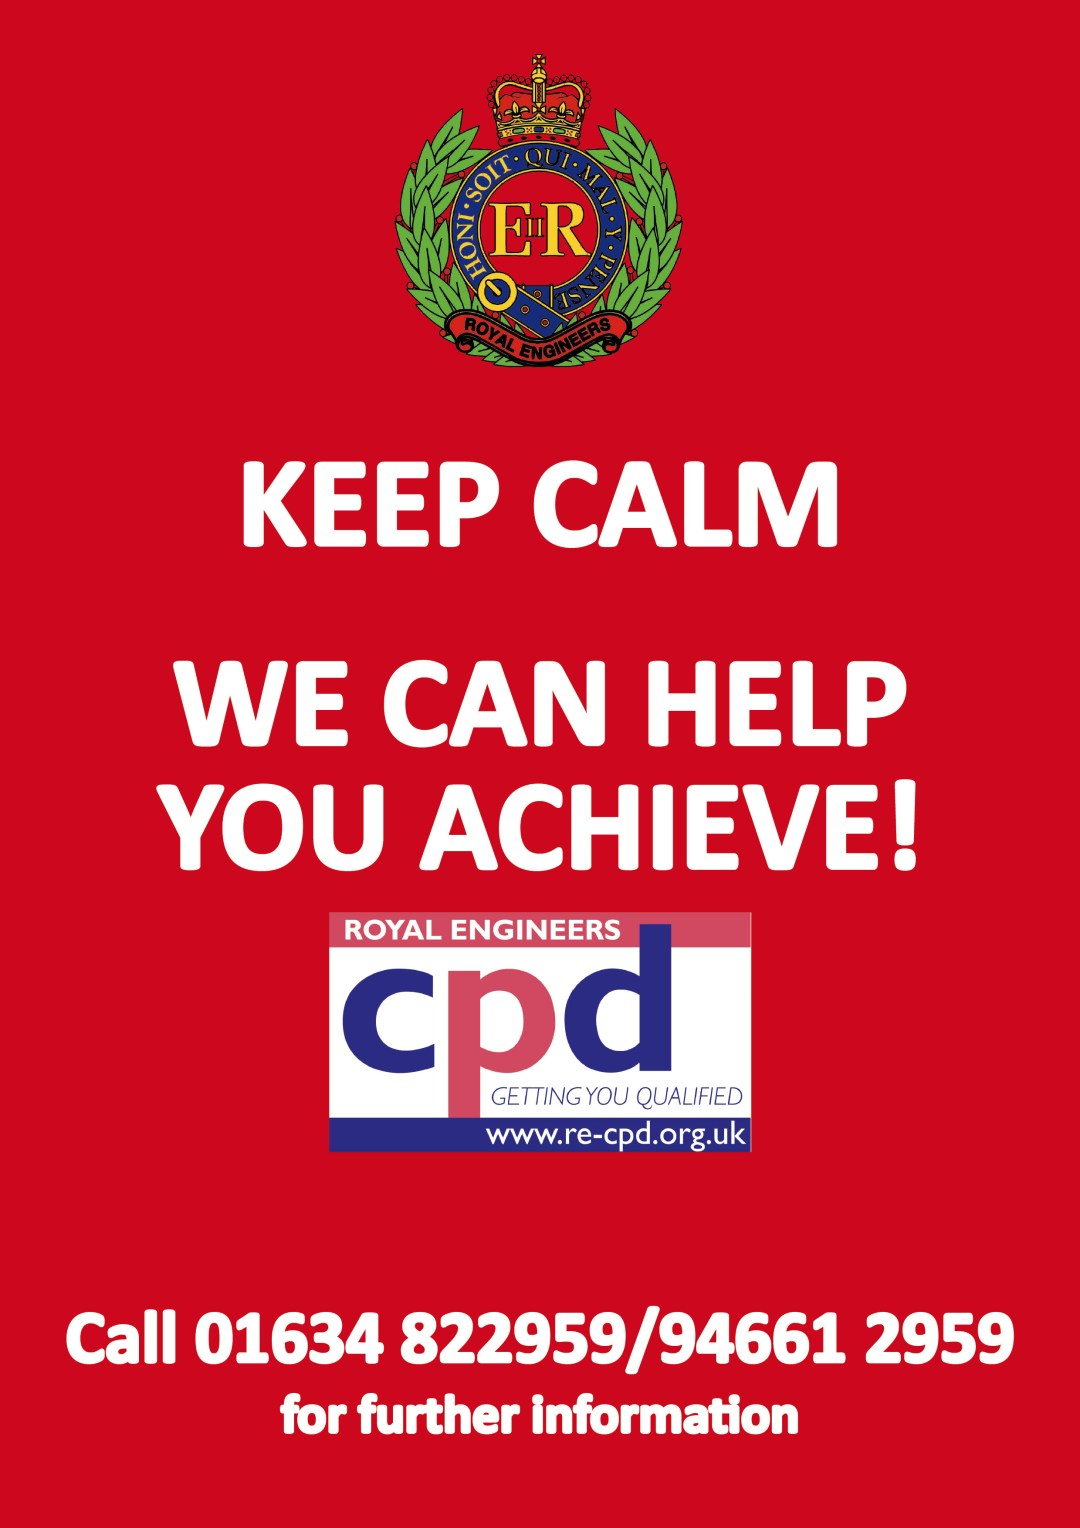 Keep Calm We Can Help You Achieve!